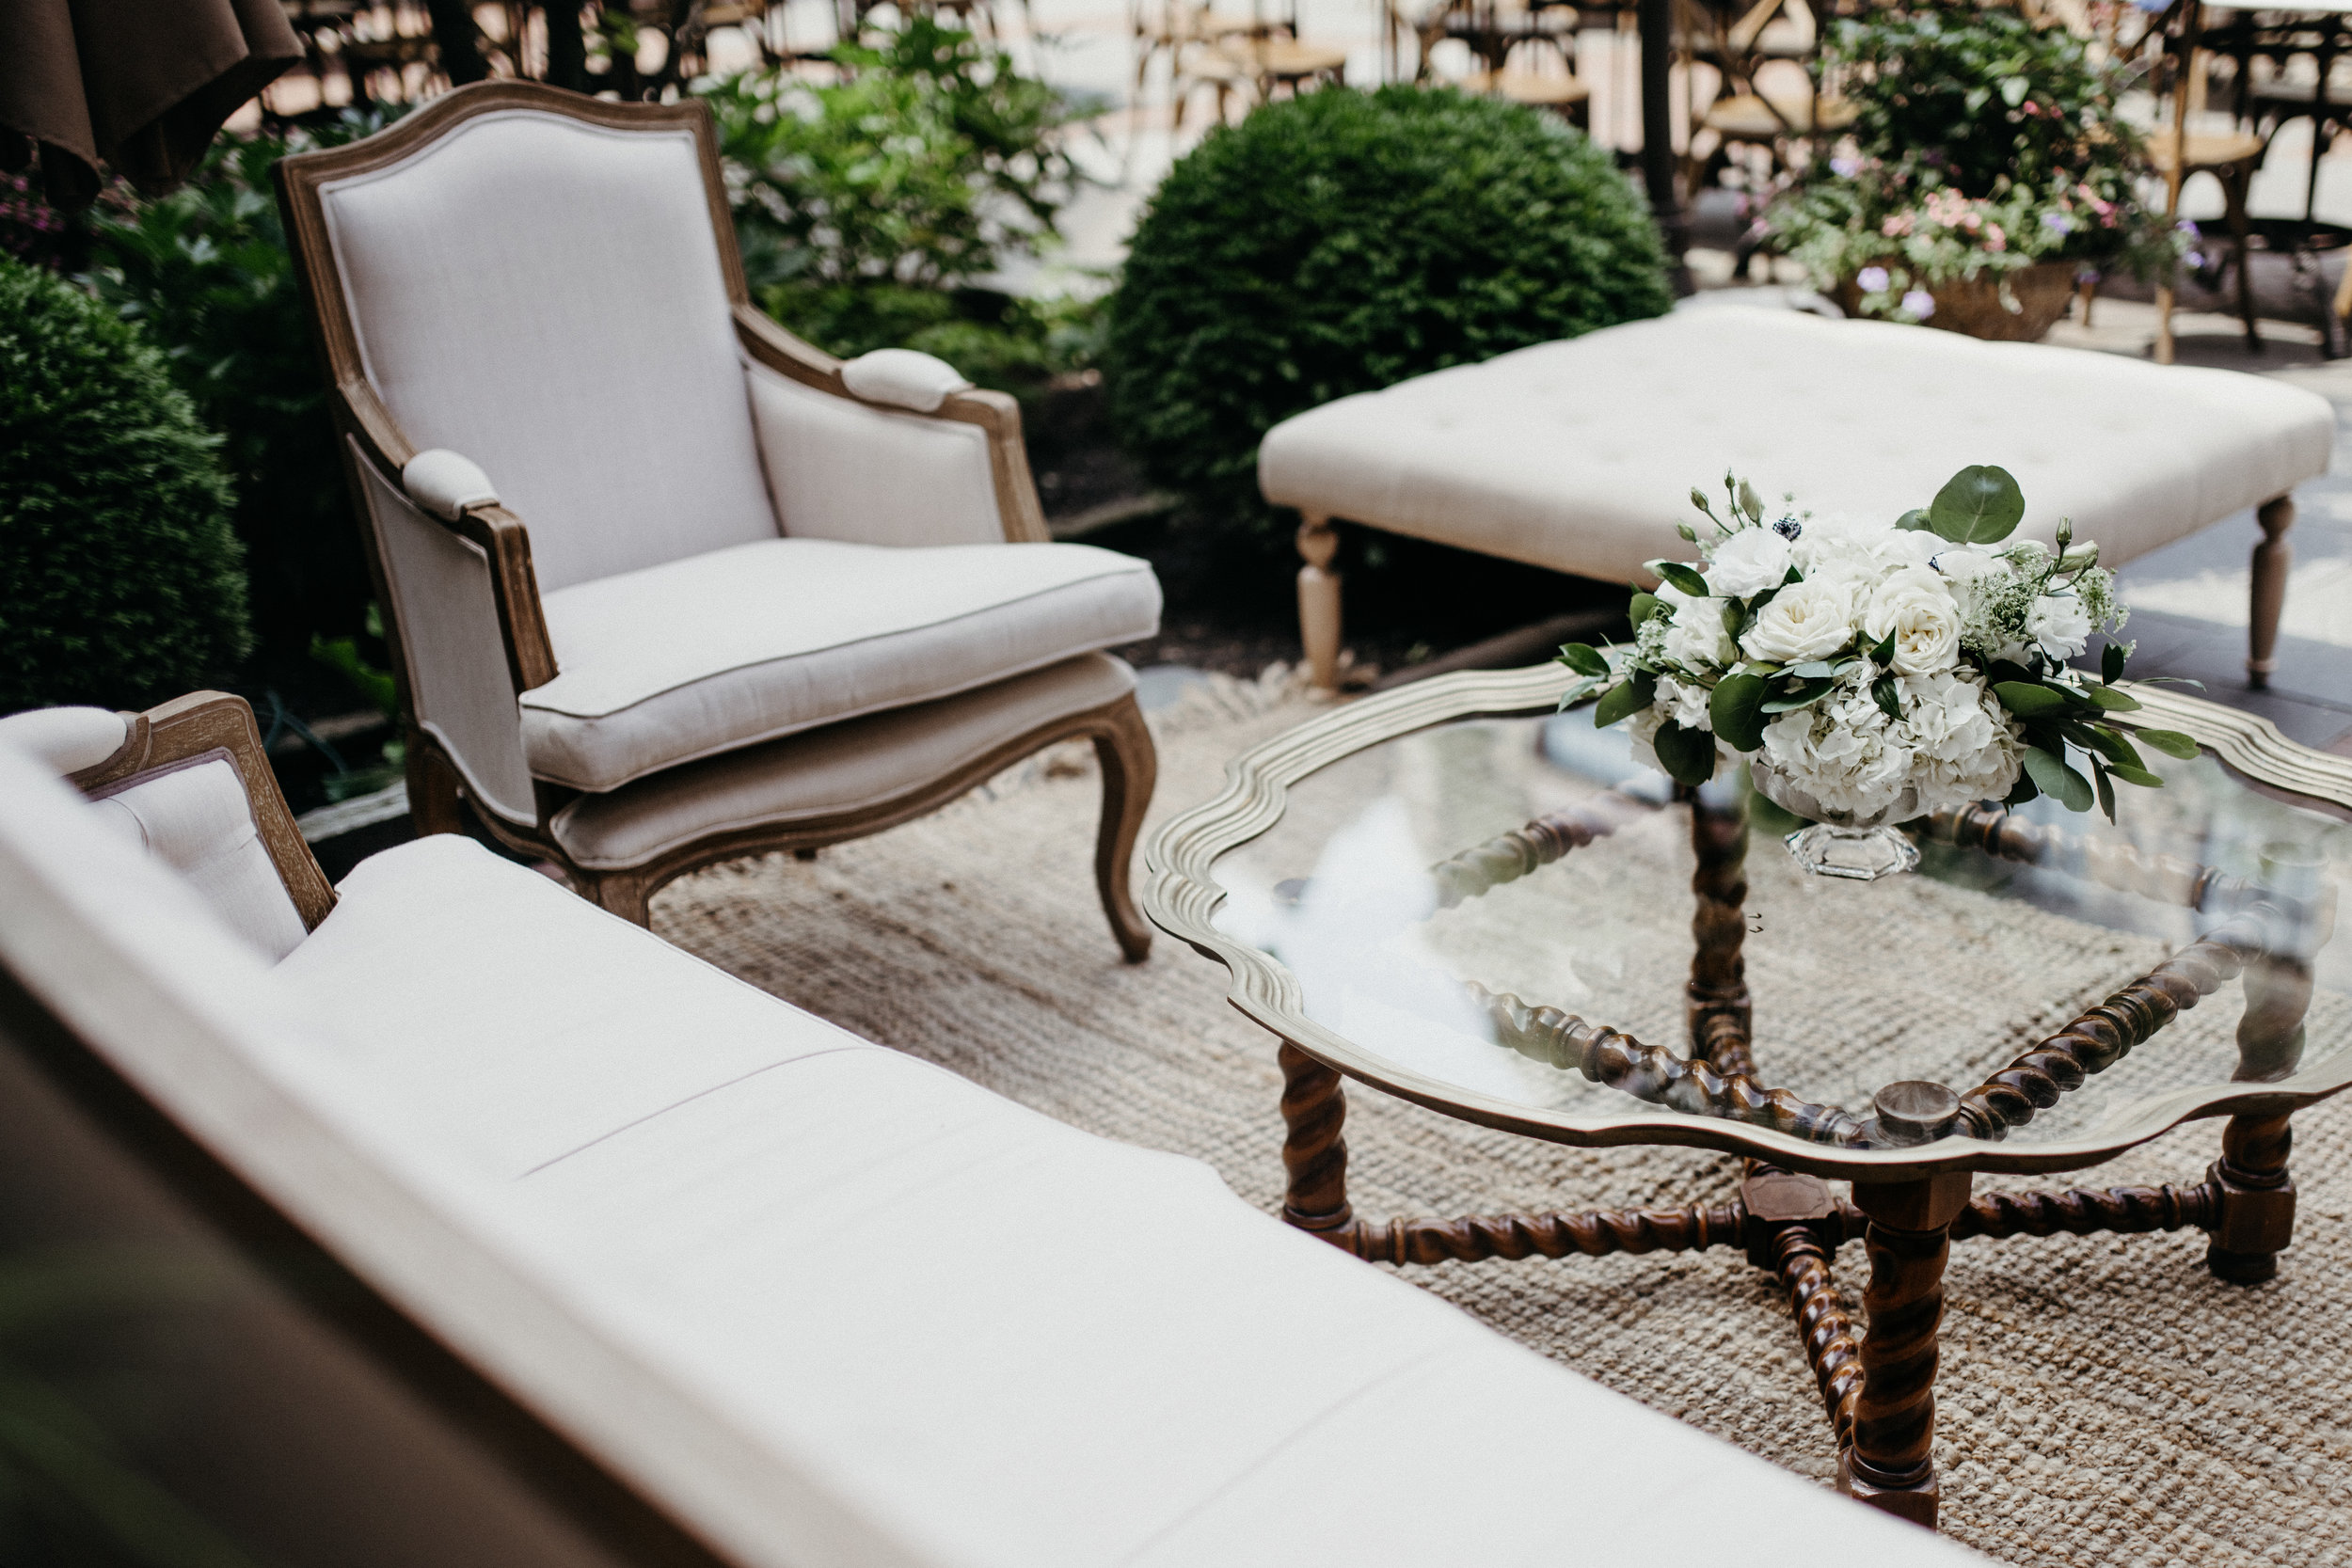 Photo Cred:  JennMarie Wedding Photography.  Styling:  Ellie Styled of Lake Forest  Venue:  DeerPath Inn